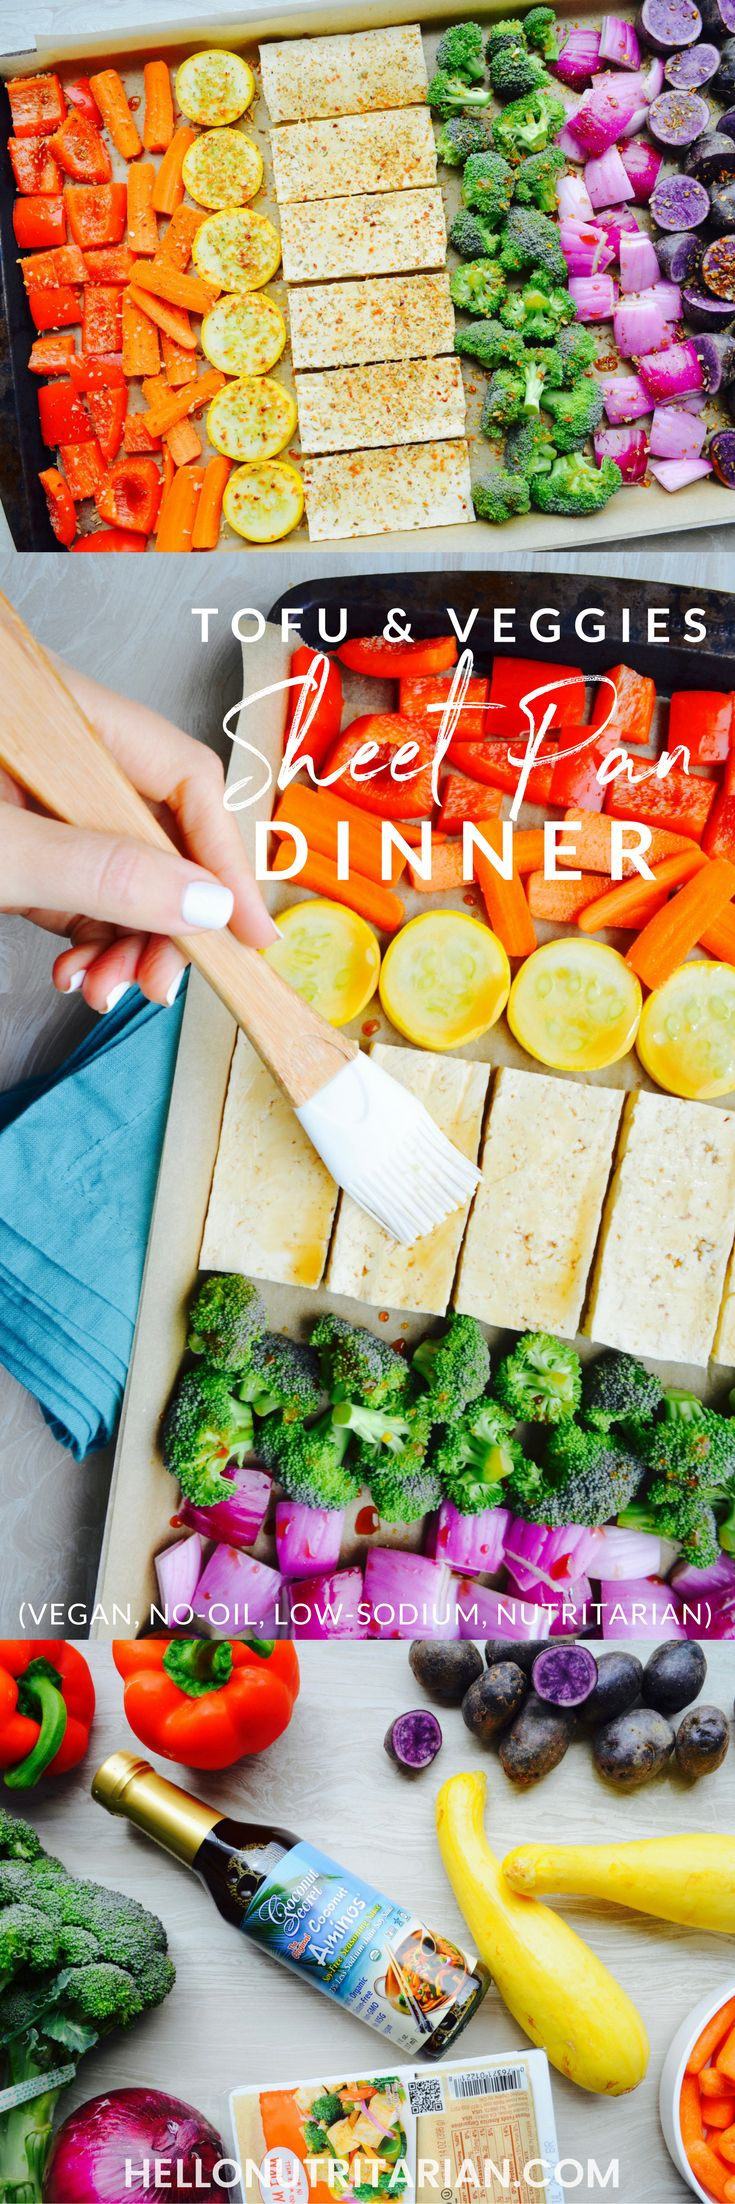 Super-easy and tasty Oil-Free Tofu & Veggies Rainbow Sheet Pan Meal! This recipe is vegan, nutritarian, whole food plant based, low-sodium and perfect if you're looking to start batch prepping your meals for the week! One sheet serves two people! xo, Kristen #sheetpandinner #veganrecipe #vegandinner